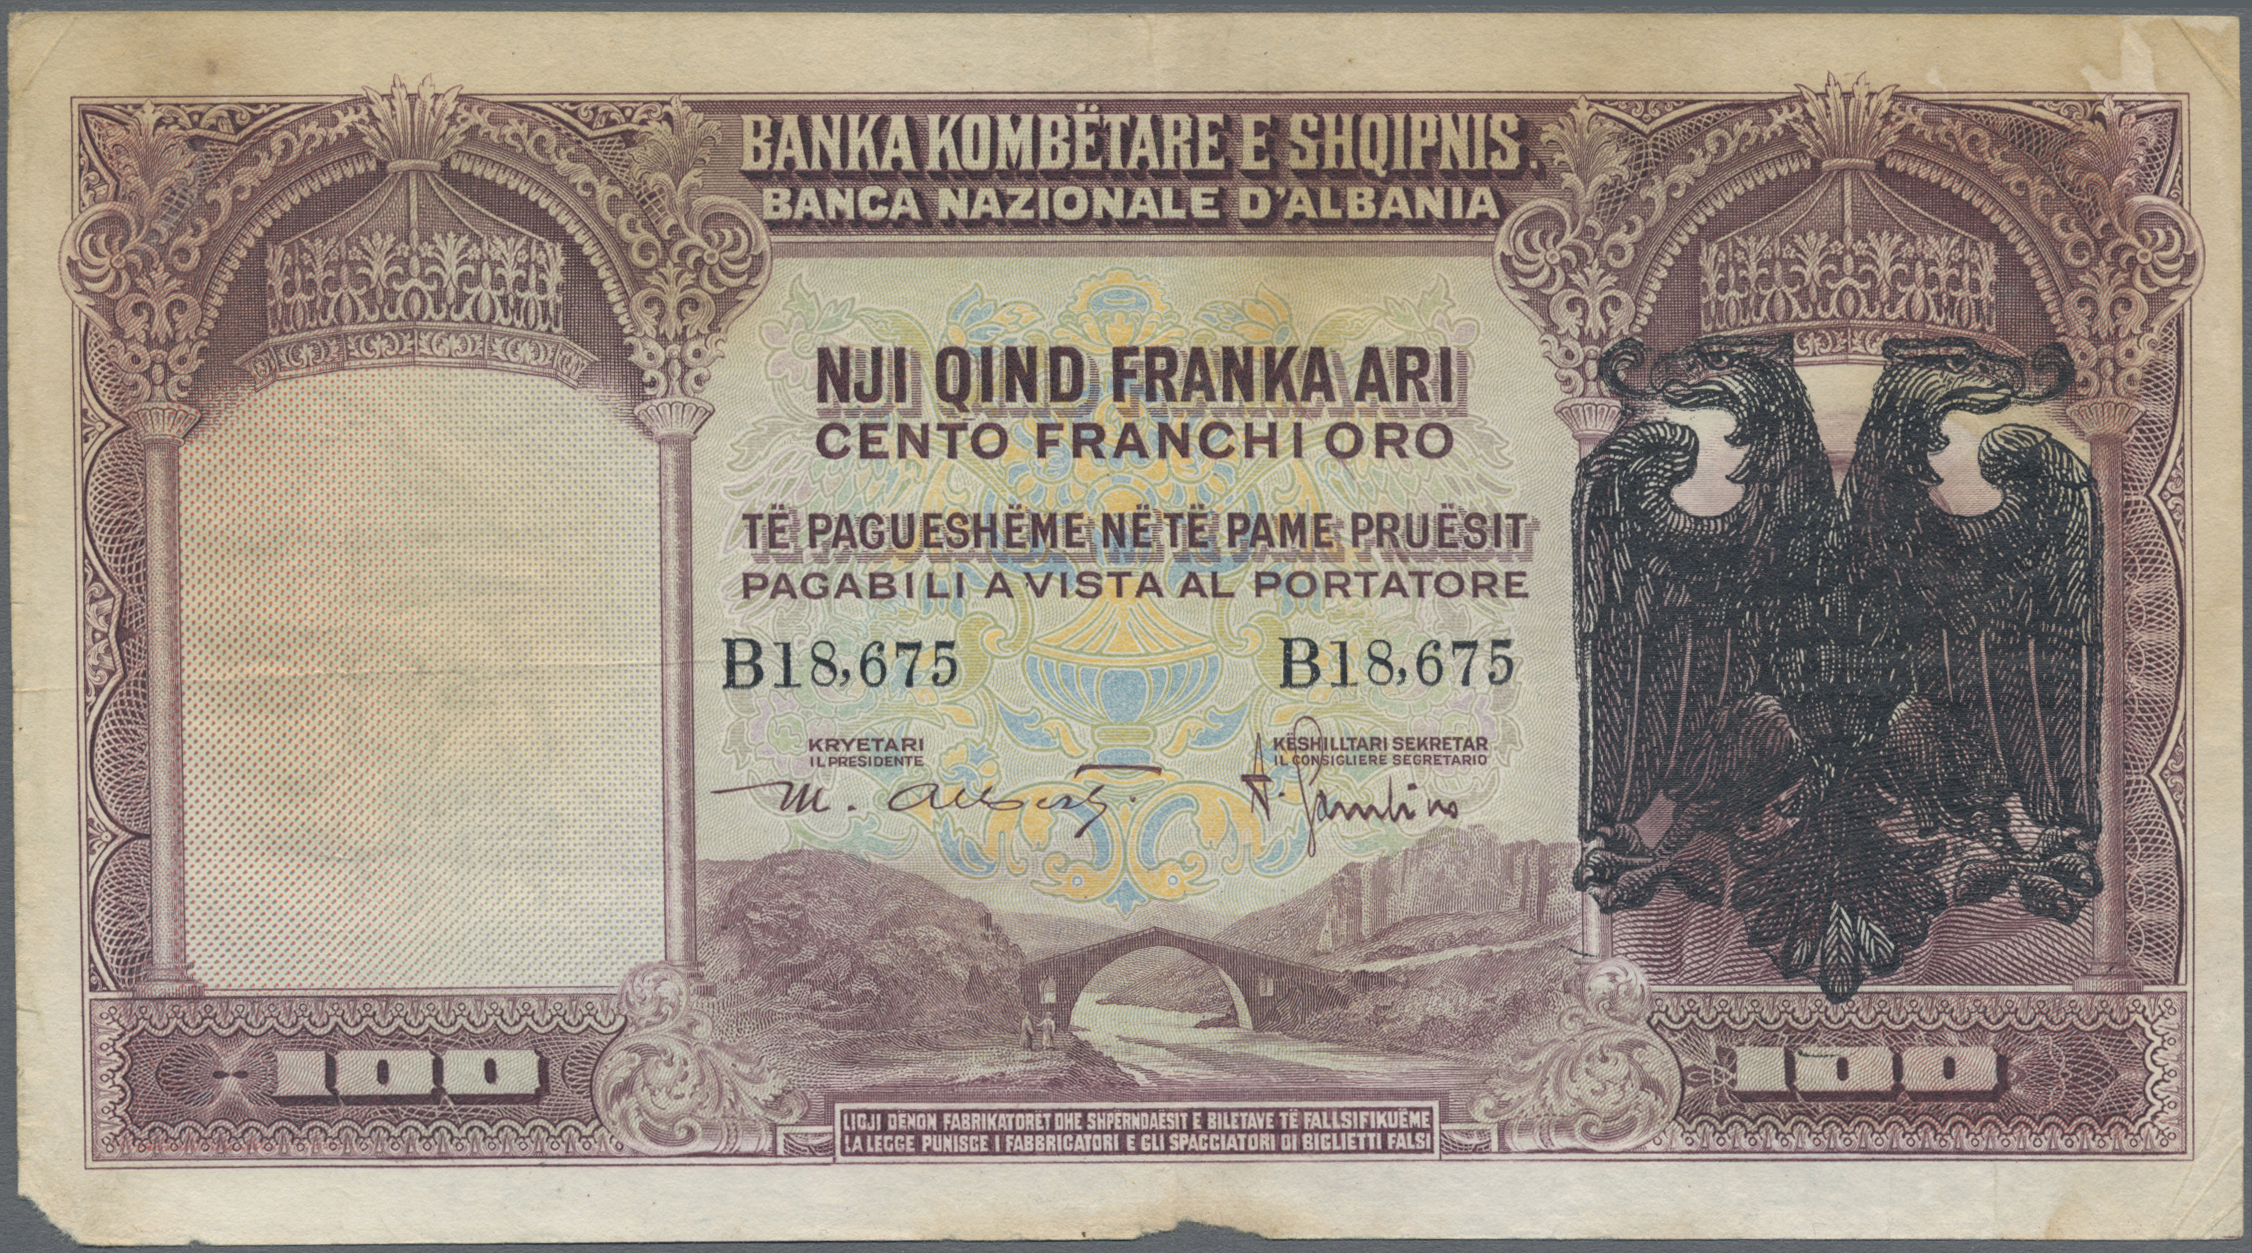 Lot 00009 - Albania / Albanien | Banknoten  -  Auktionshaus Christoph Gärtner GmbH & Co. KG Sale #48 The Banknotes